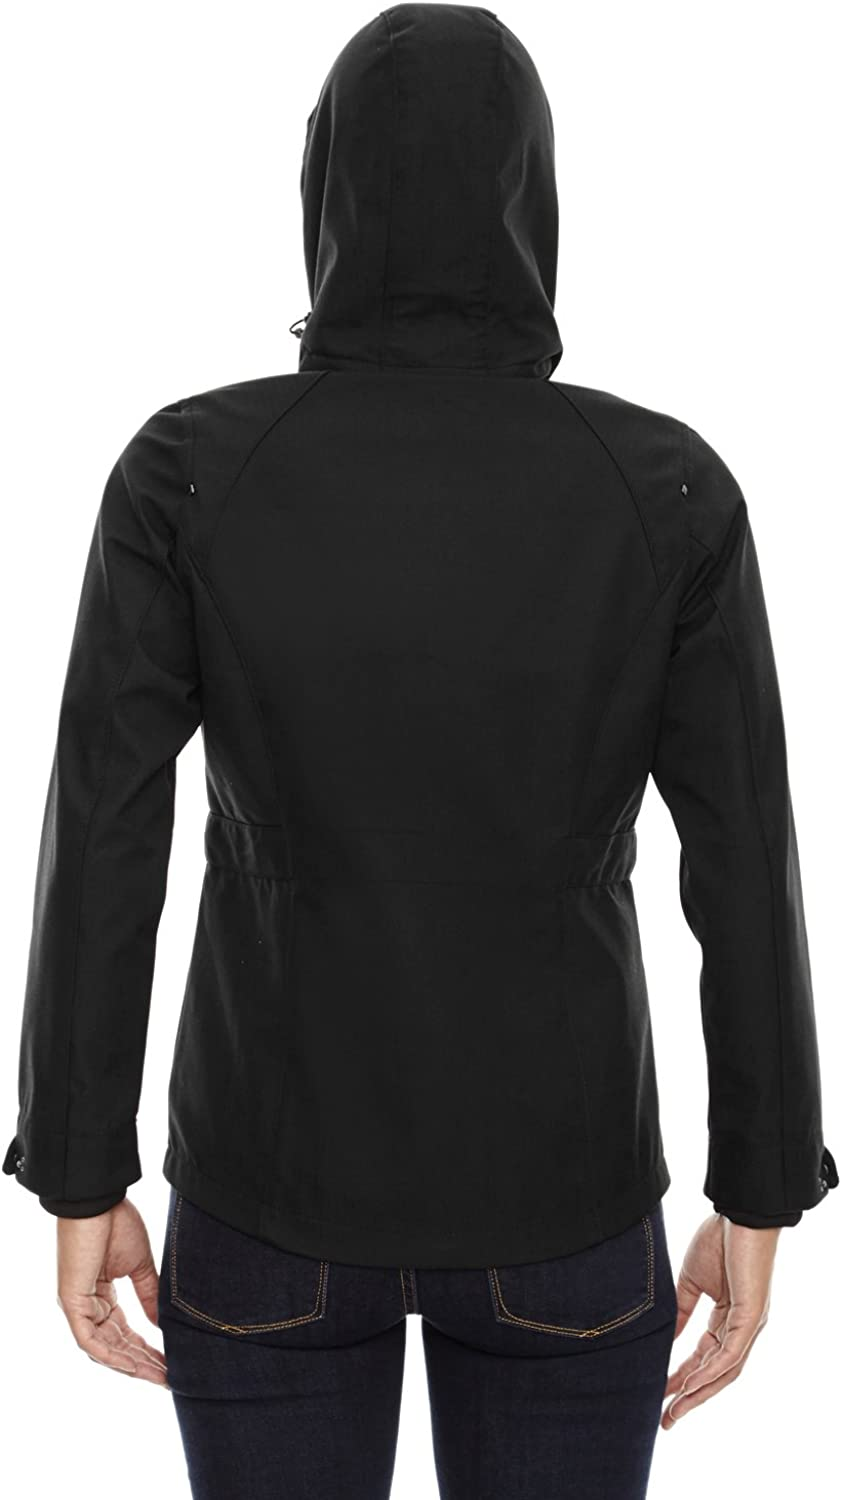 North End Women's 3Layer Light Textured Soft Shell Jacket